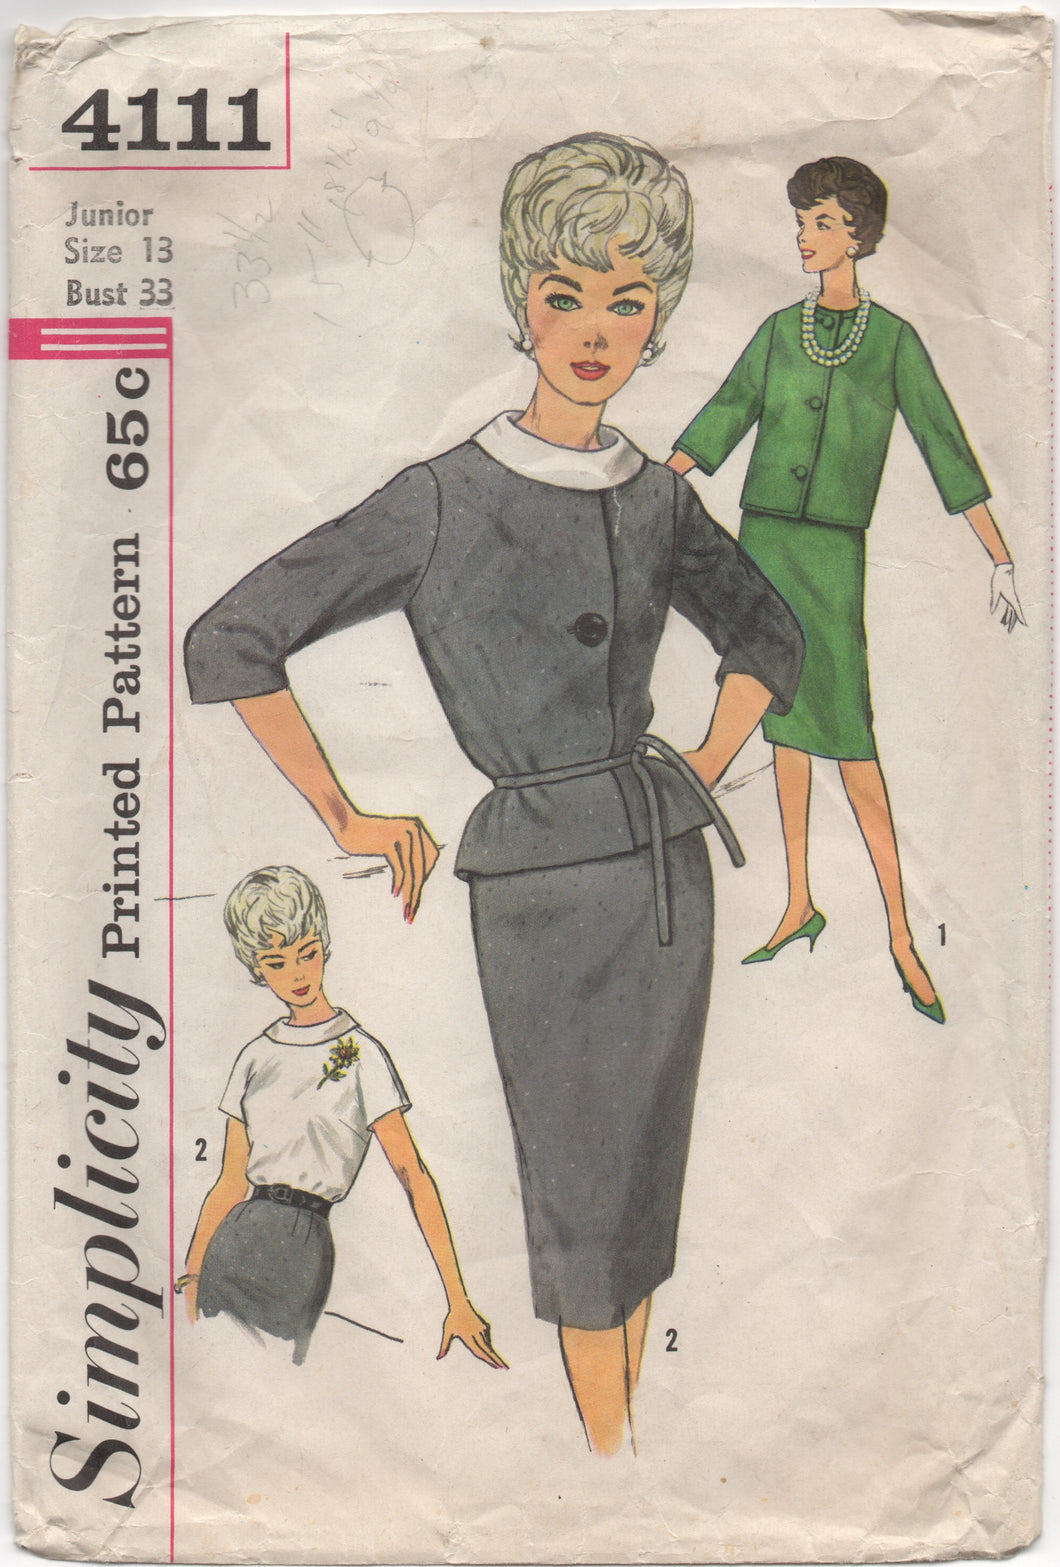 1960's Simplicity Suit Dress with Rolled Collar - Bust 33